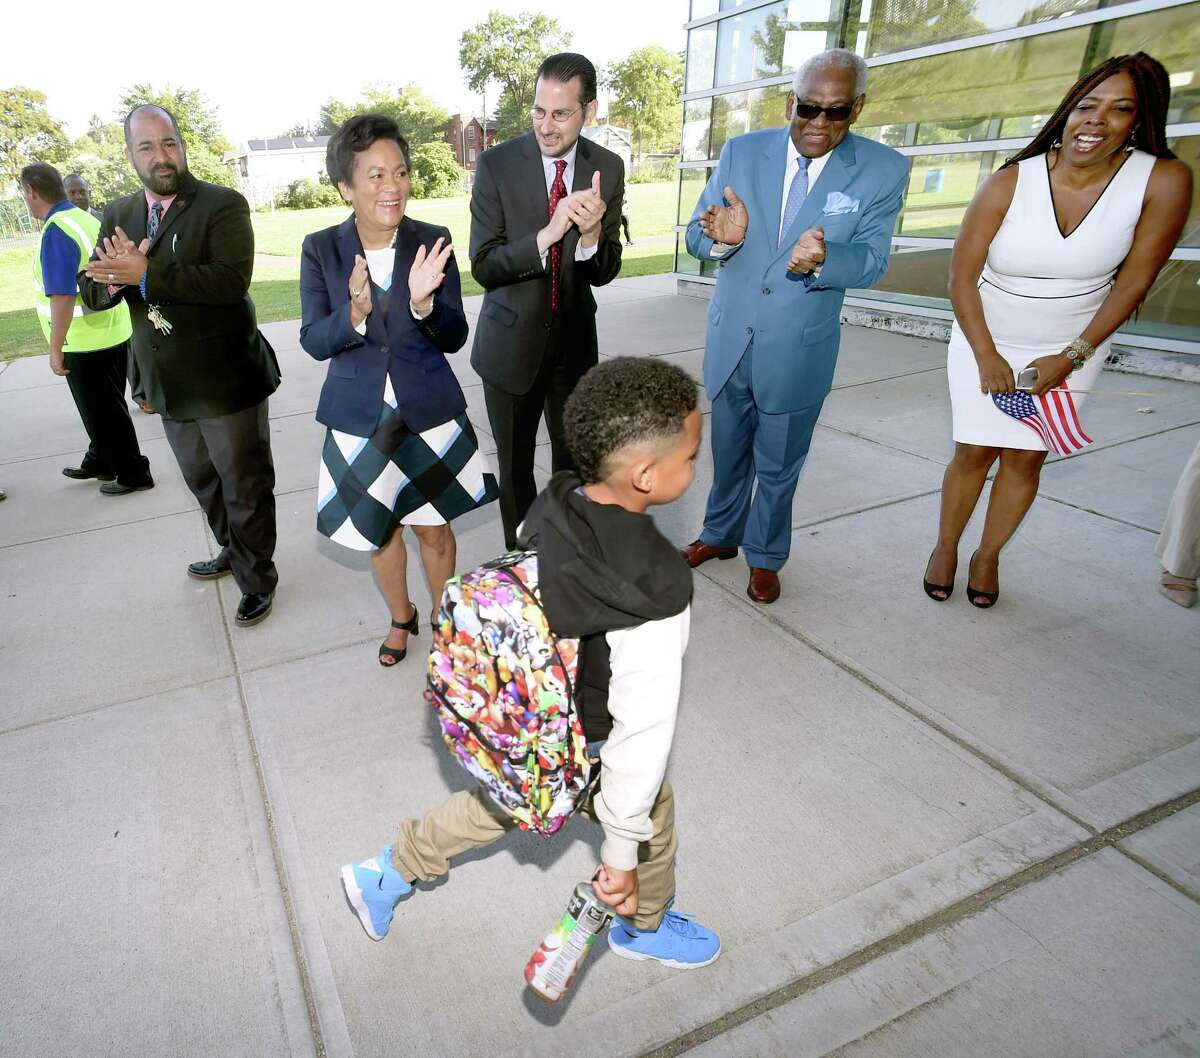 Left to right, principal Daniel Bonet, New Haven Mayor Toni Harp, state representative Al Paolillo, New Haven Superintendent of Schools Reginald Mayo and administrator Gemma Joseph Lumpkin greet students outside of John C. Daniels School of International Communications in New Haven on the first day of school on 8/28/2017. Arnold Gold / Hearst Connecticut Media